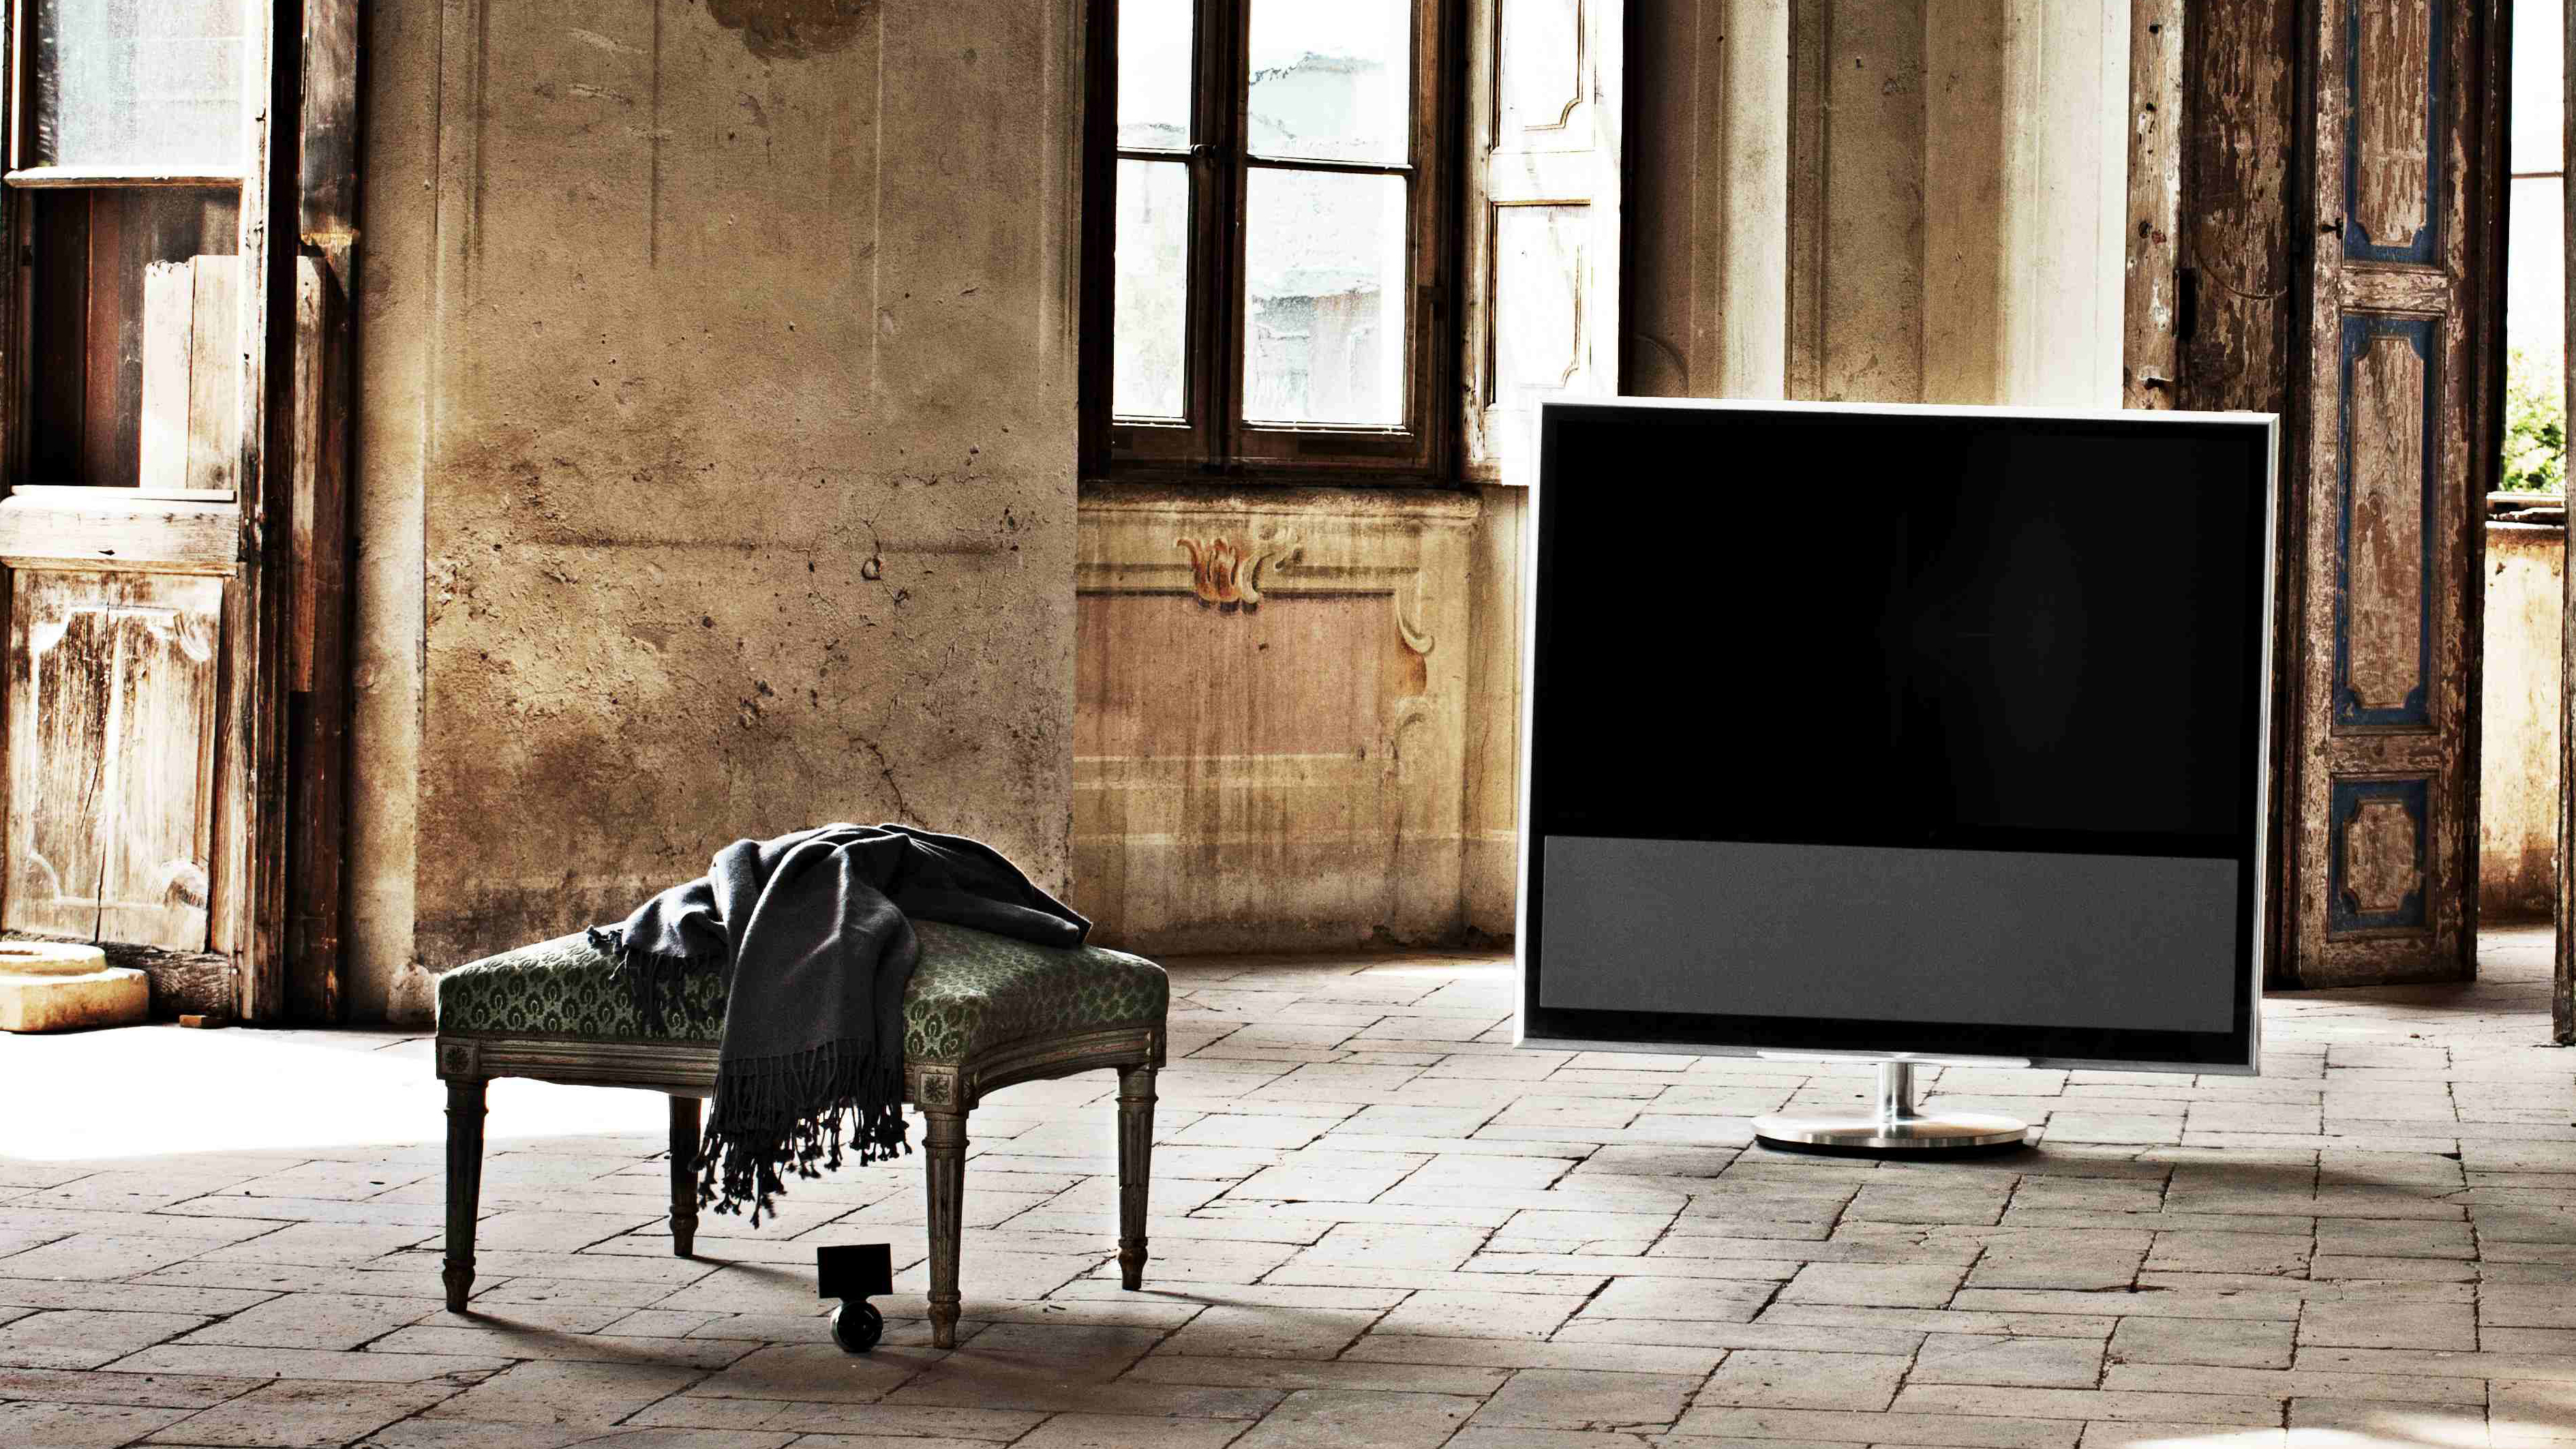 Bang And Olufsen Beovision 11 beovision 11 is b&o's first smart tv | techradar